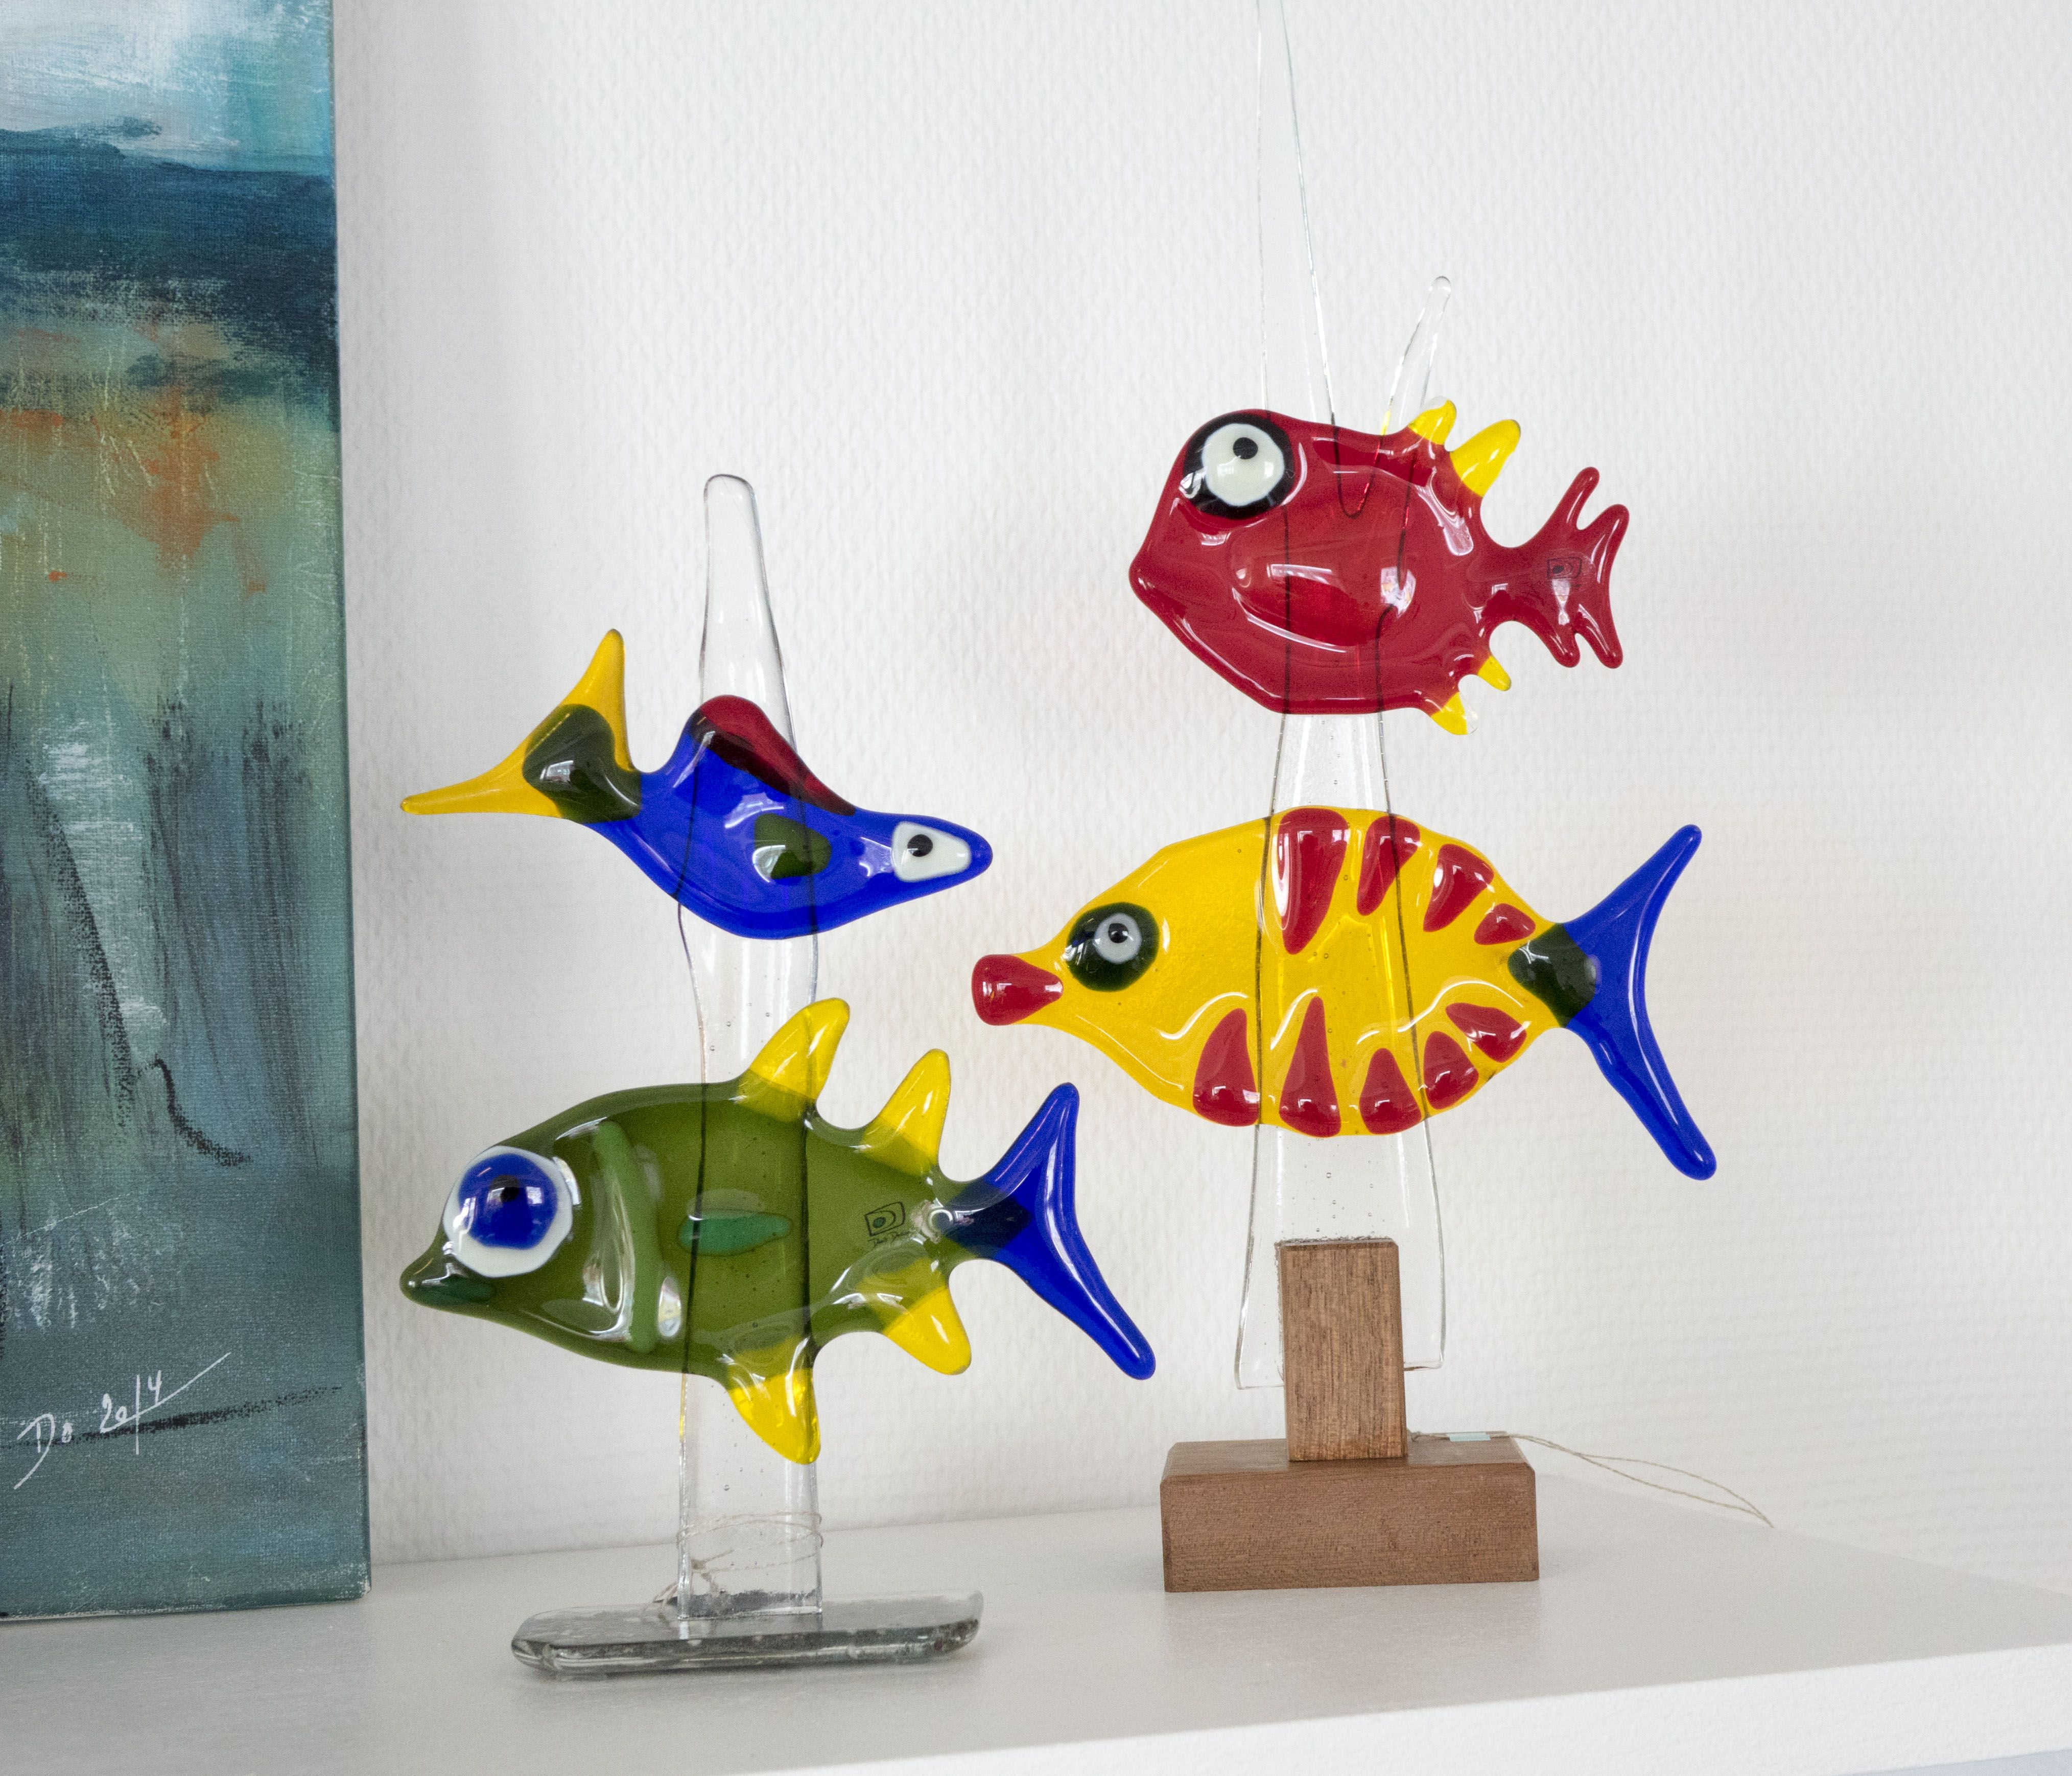 Fused glass - fishes